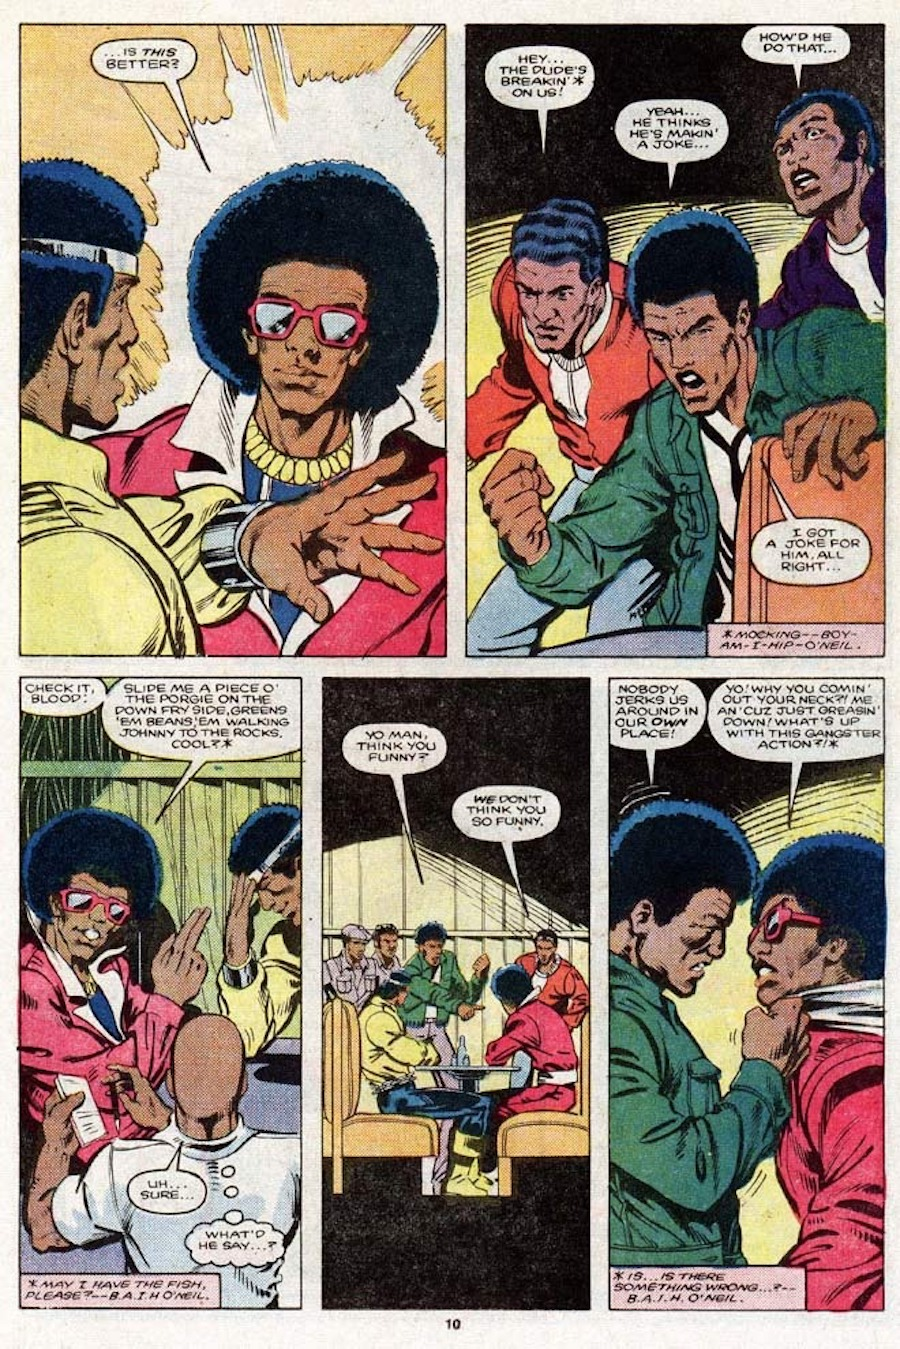 Black Comics, Black Superheroes, African American Author, Black Author, African American Cinema, Black Cinema, Christopher Priest, KINDR'D Magazine, KINDR'D, KOLUMN Magazine, KOLUMN